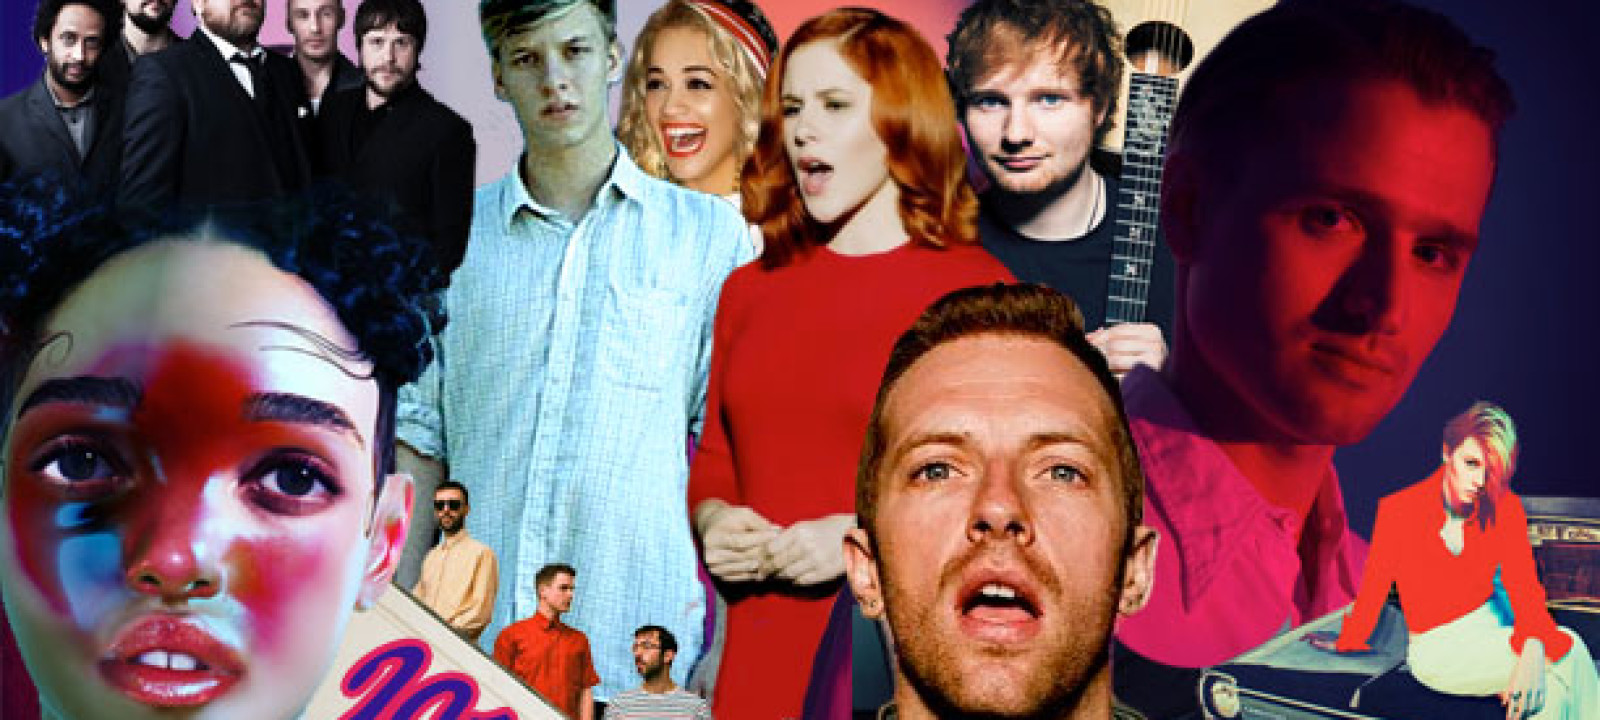 A selection of 2014's musical faces